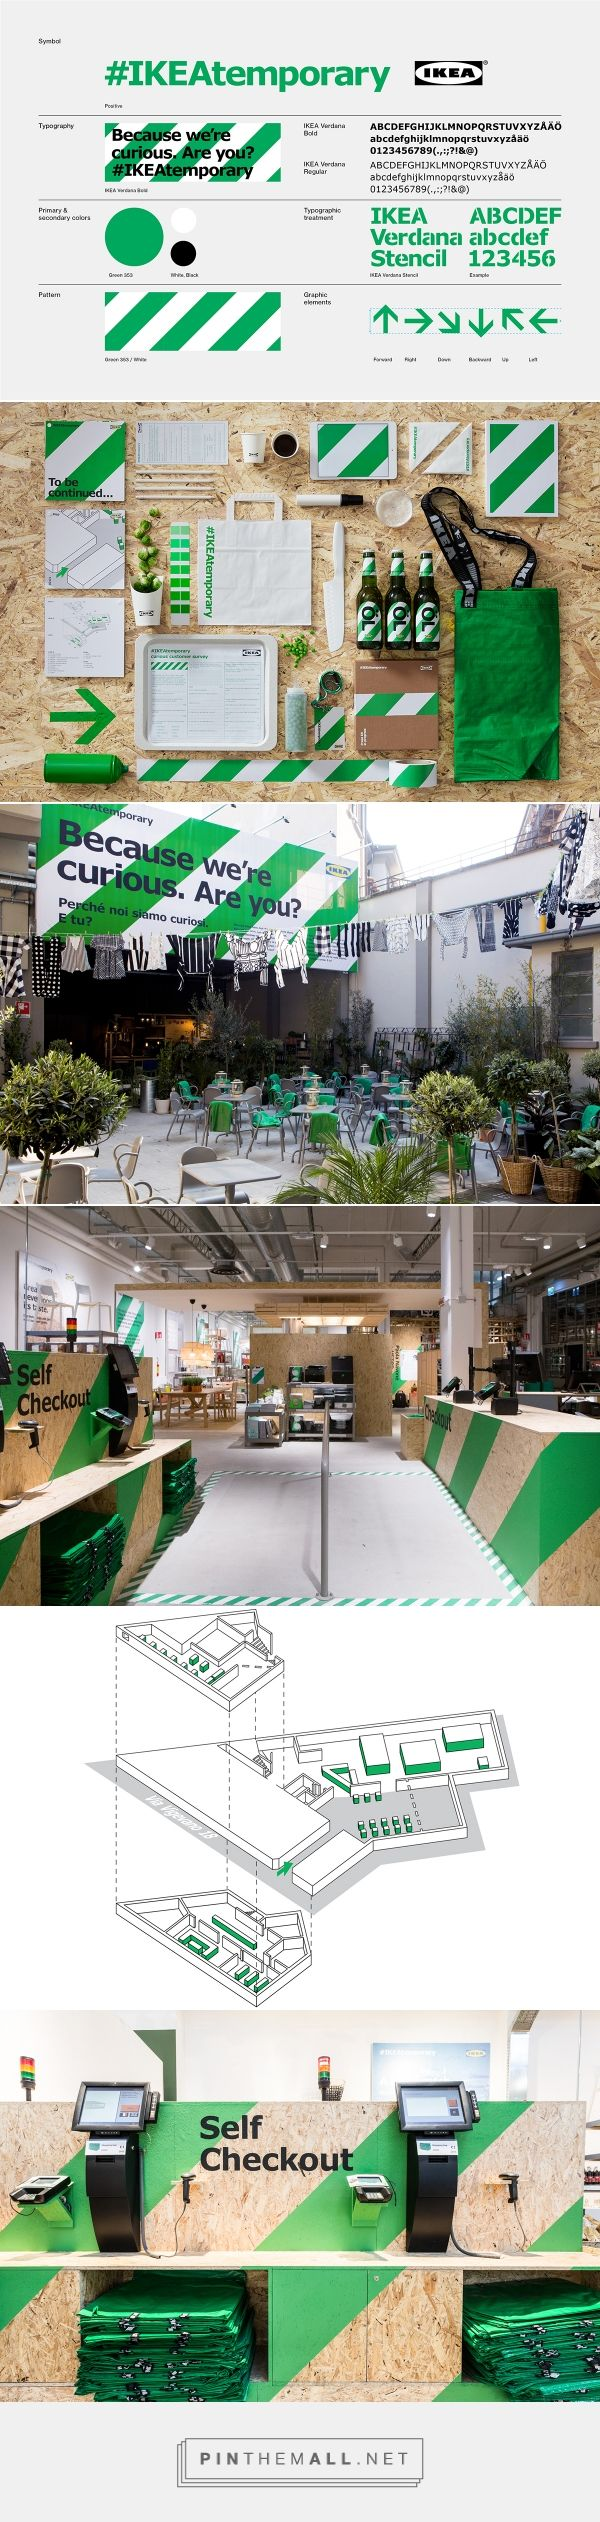 best corporate commercial spaces images on pinterest